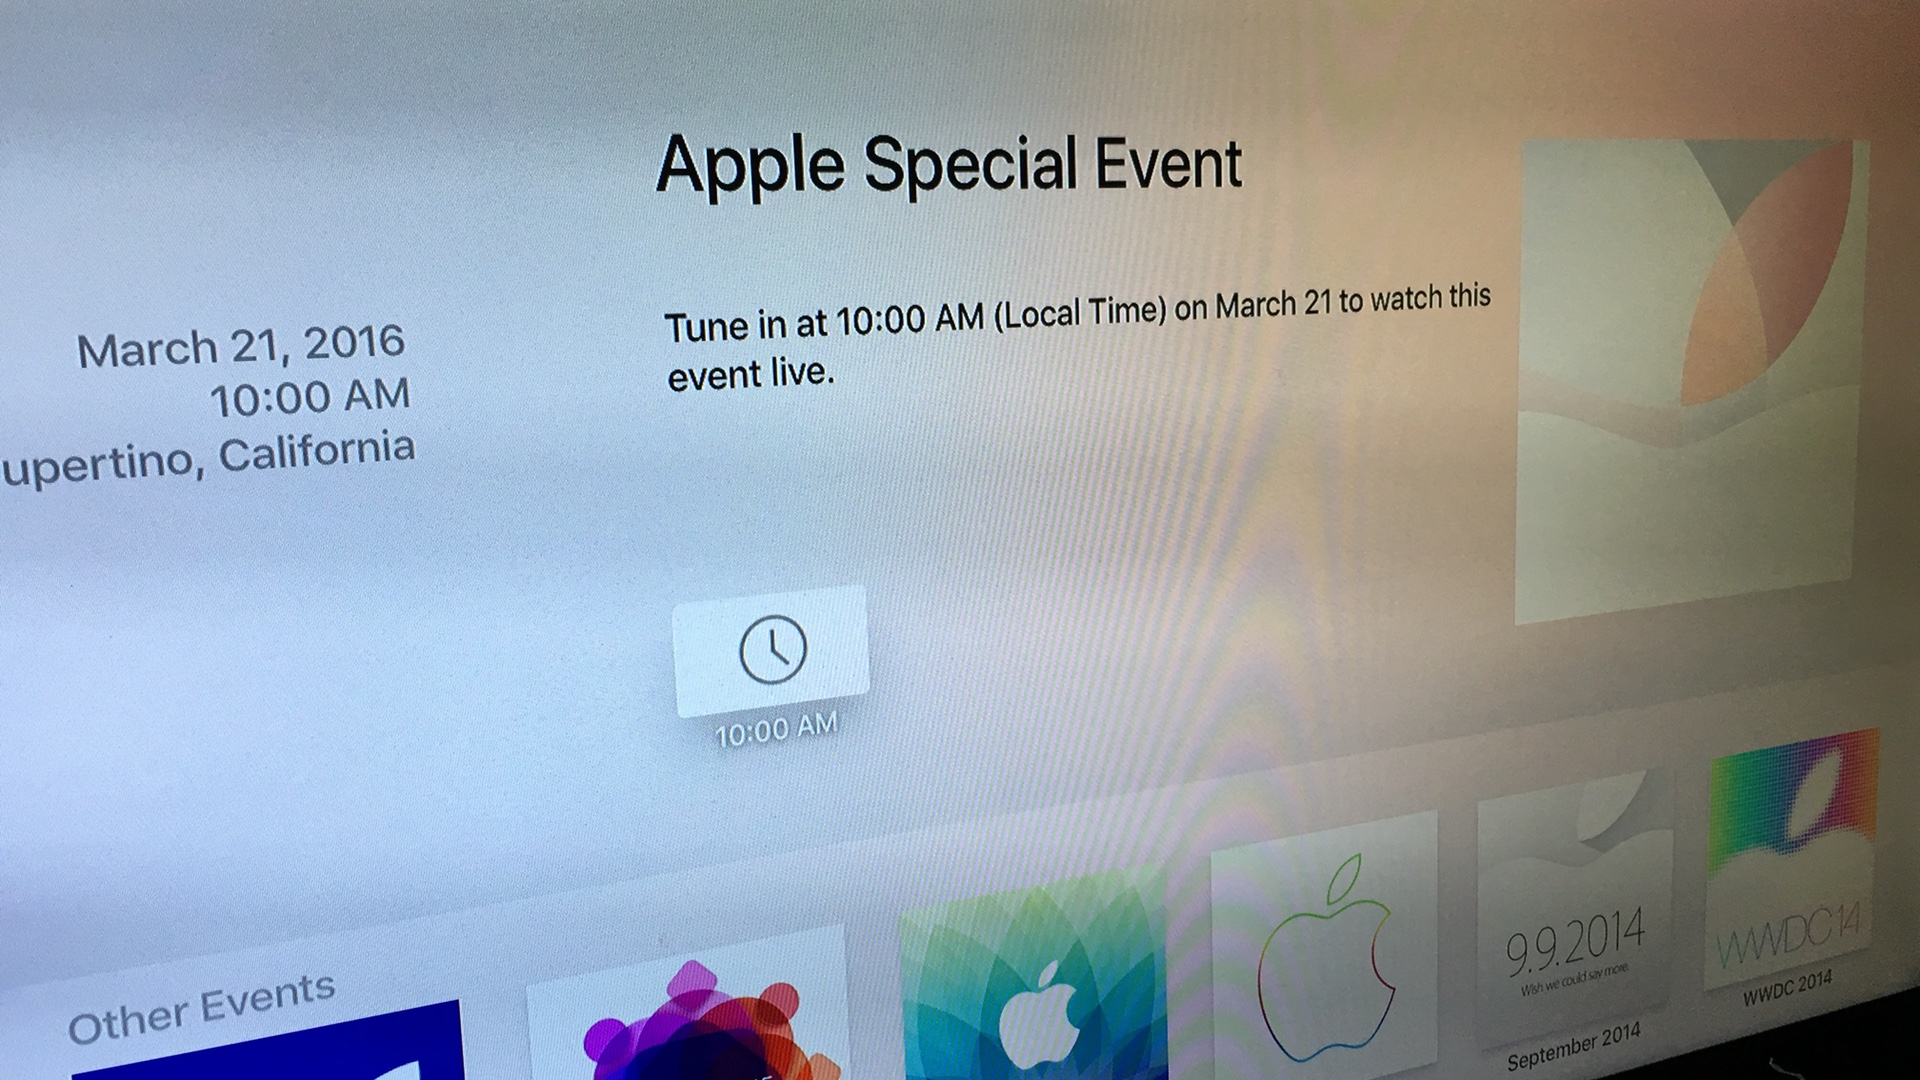 Apple March 21 2016 Special Event on Apple TV